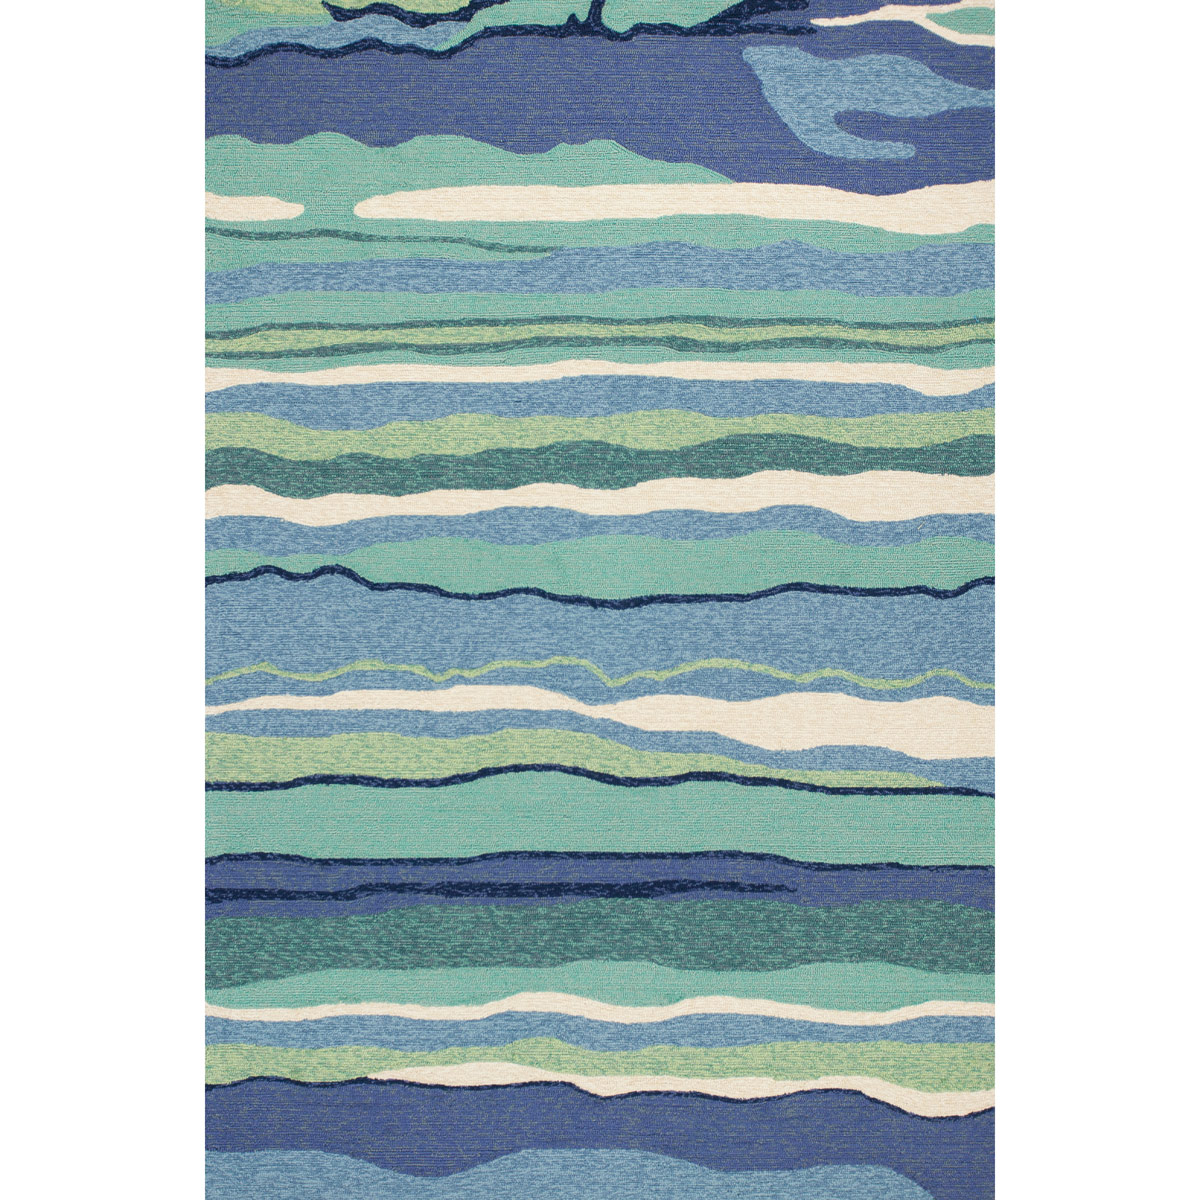 Rippling Waves Indoor Outdoor Rug 3 X 5